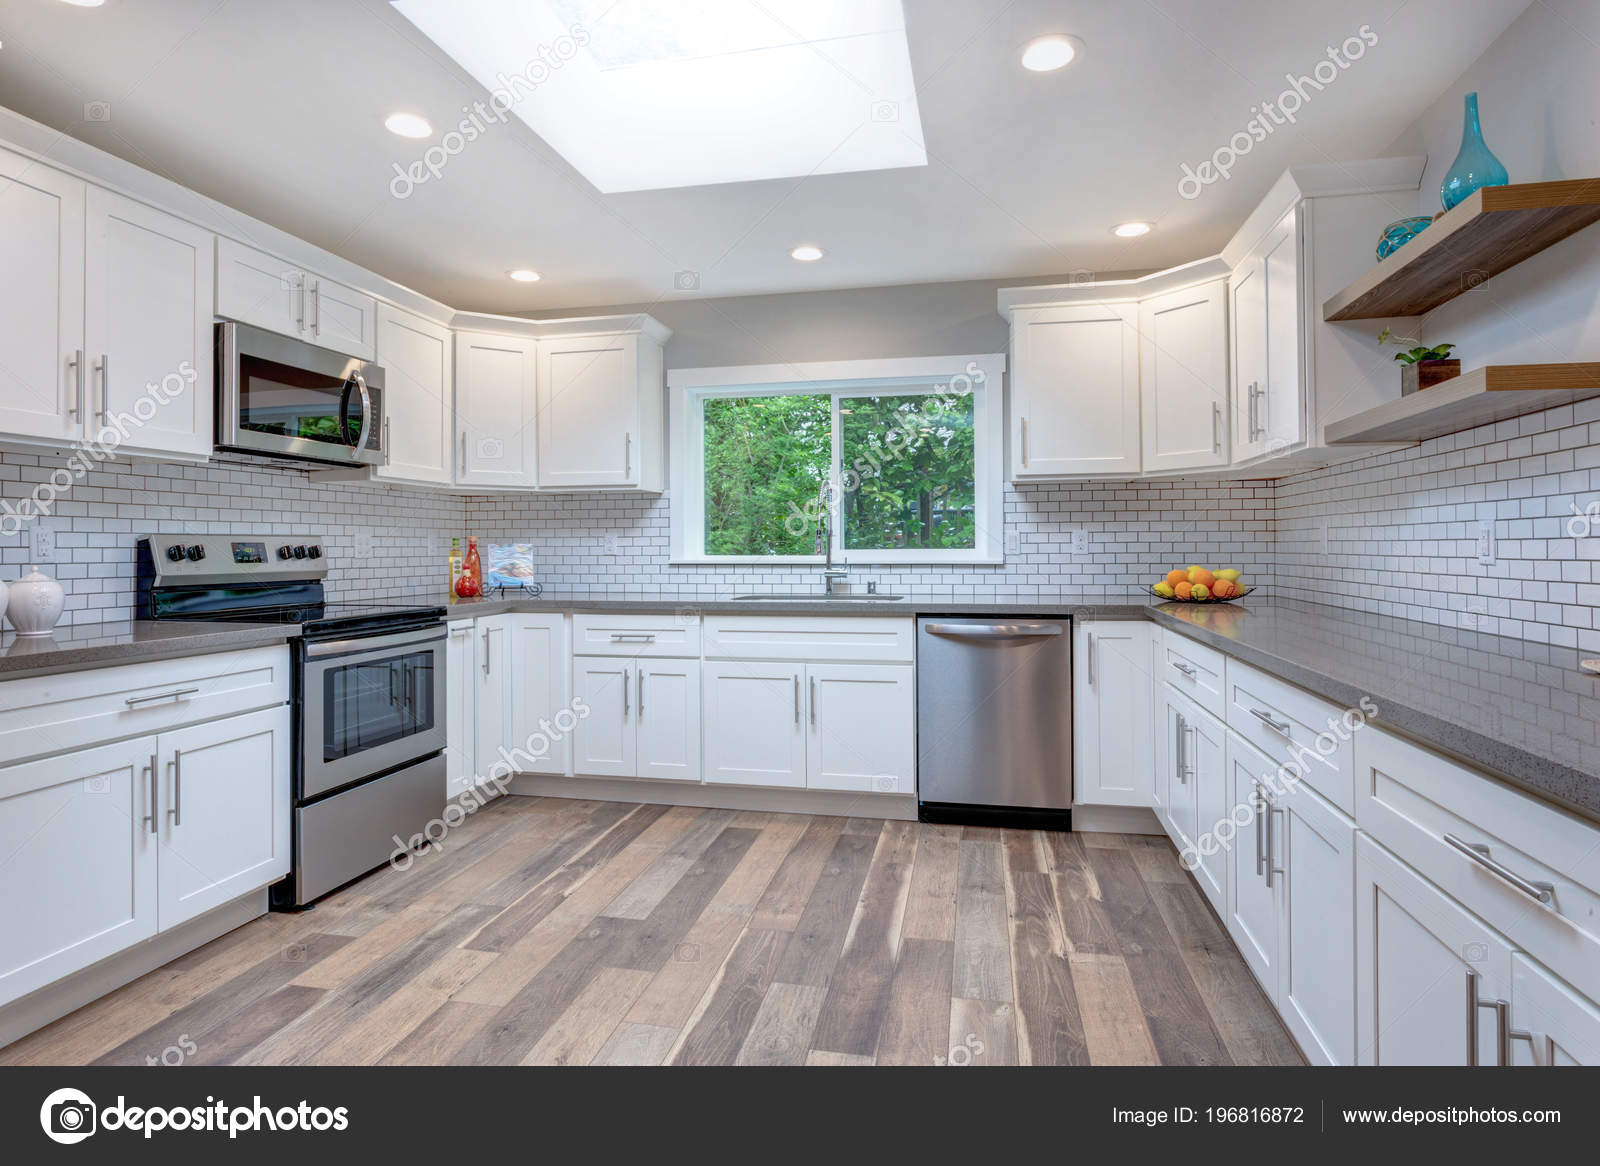 Open Concept Kitchen White Cabinets Grey Quartz Countertops Tile